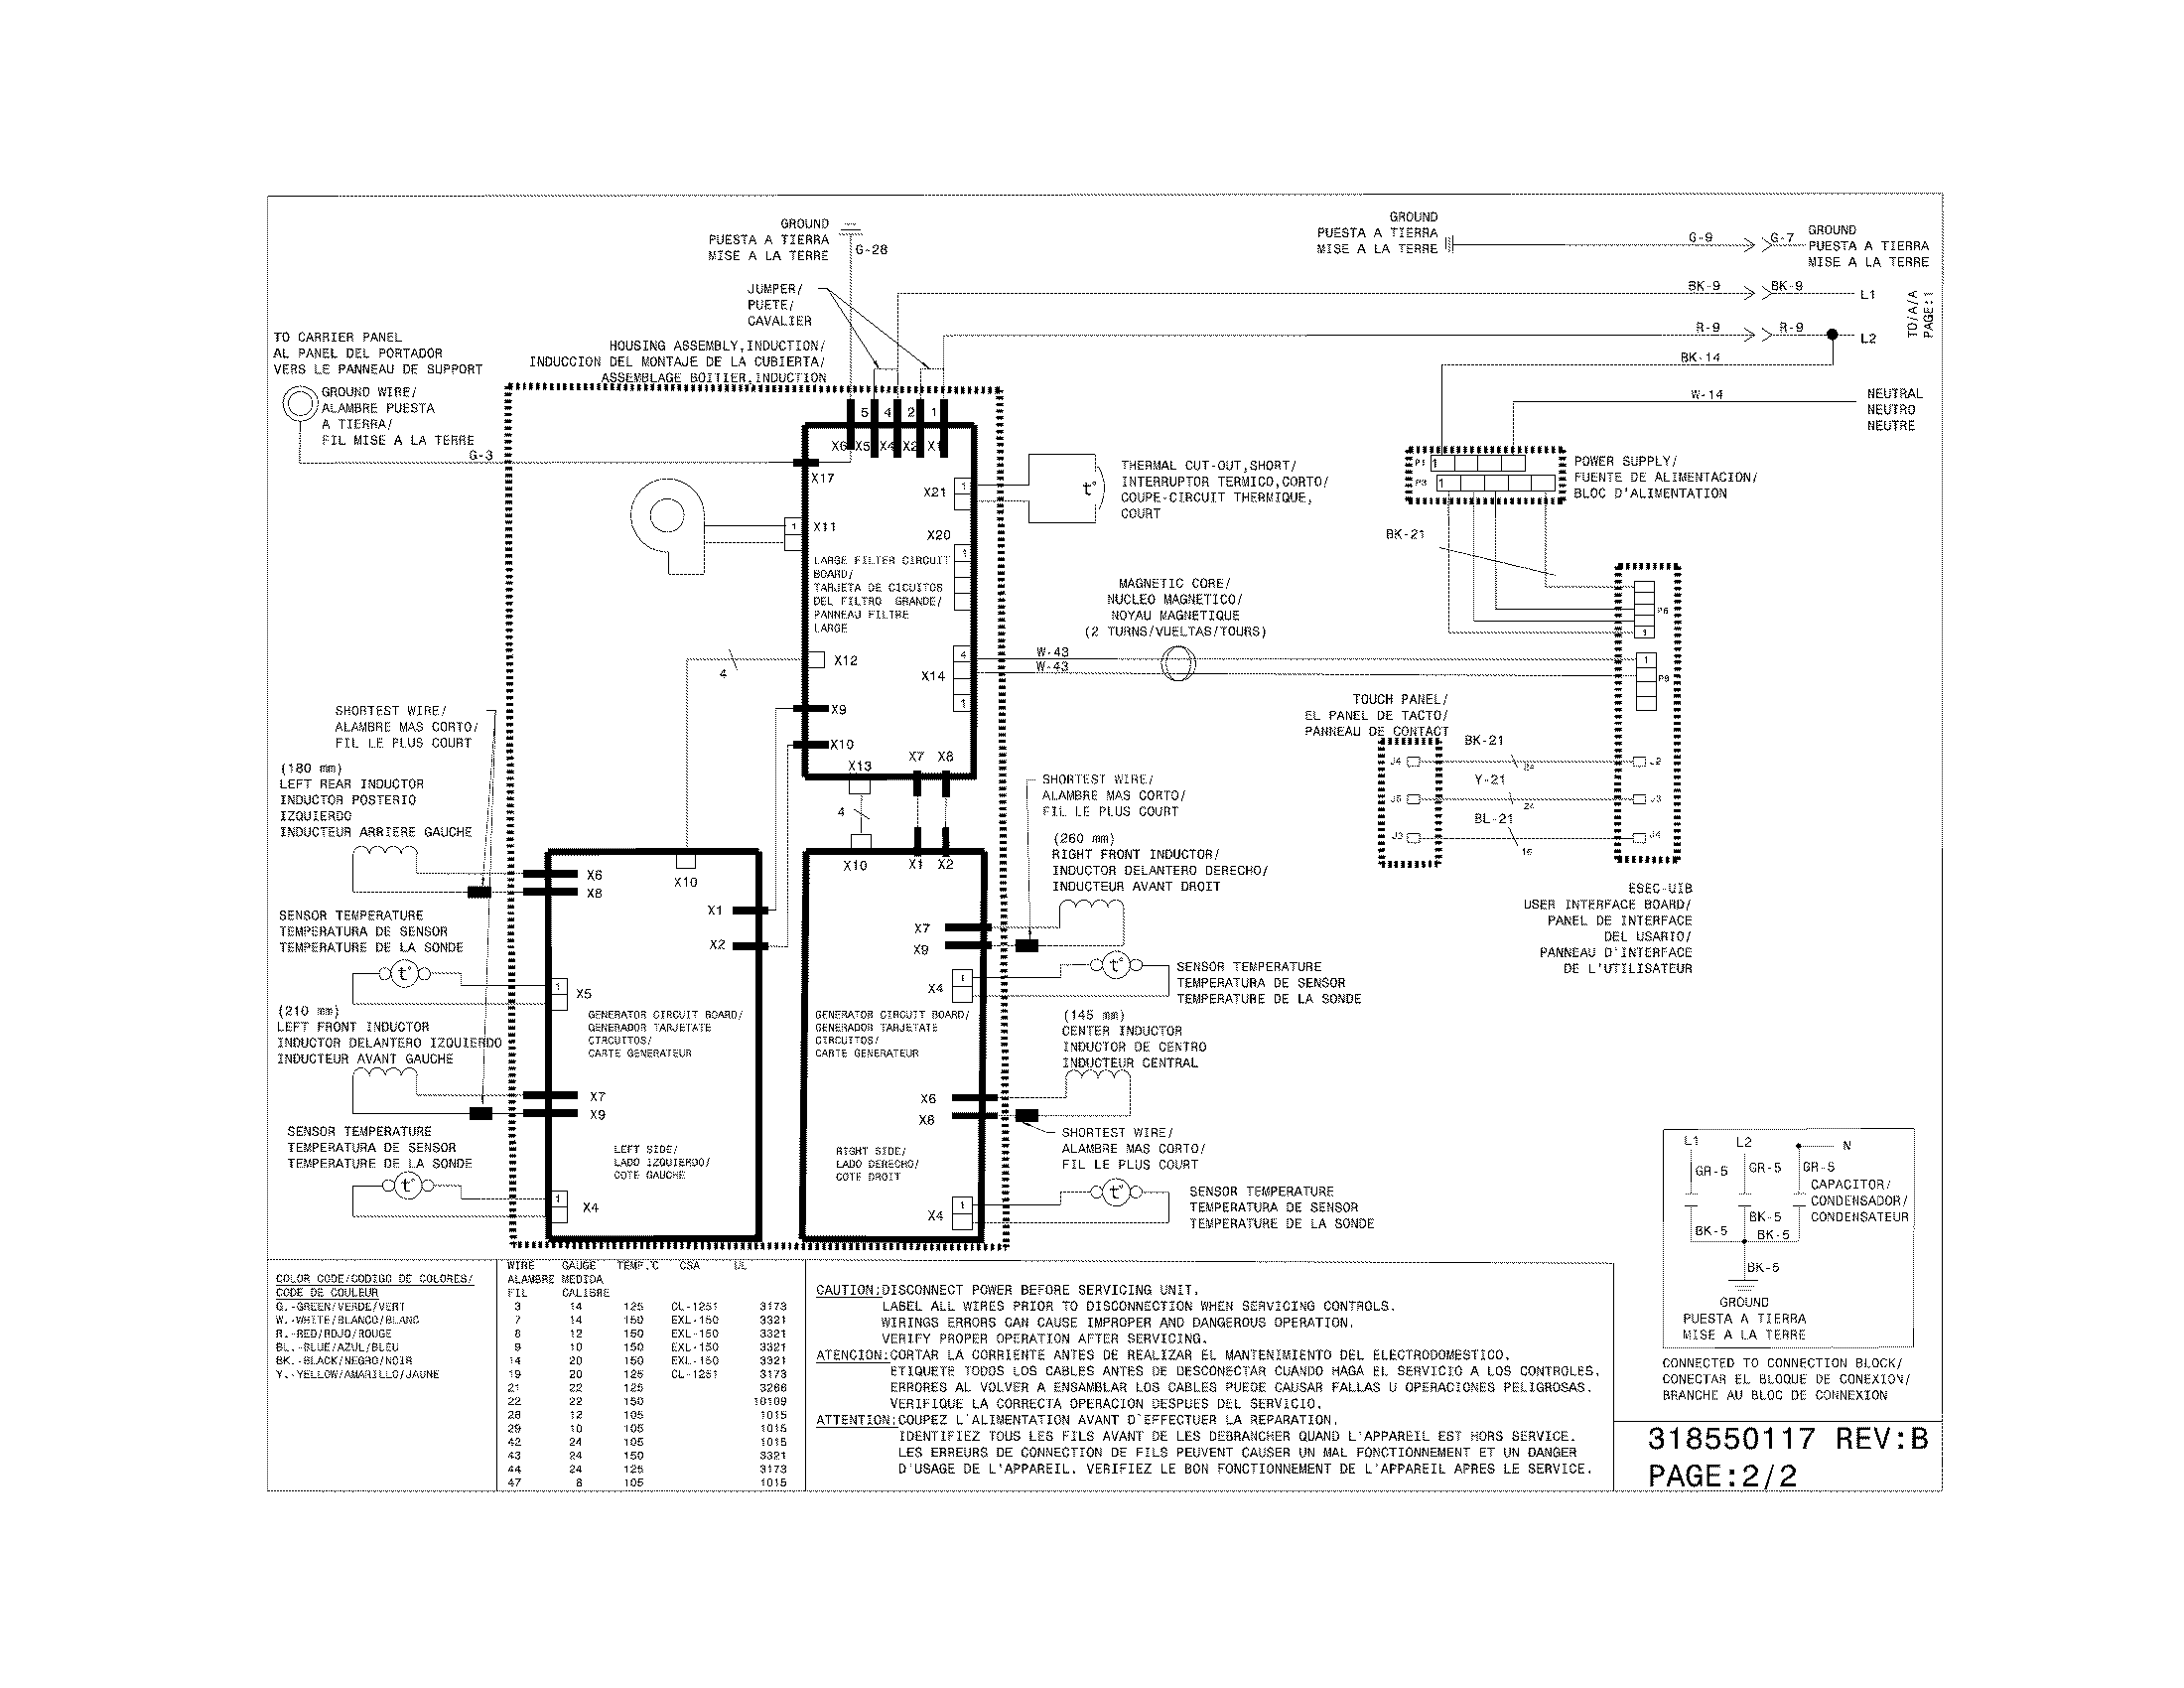 Jayco eagle wiring diagram map 07 trailblazer wiring diagram wiring diagram jayco caravan r1004103 00006 wiring diagram jayco caravanhtml asfbconference2016 Images